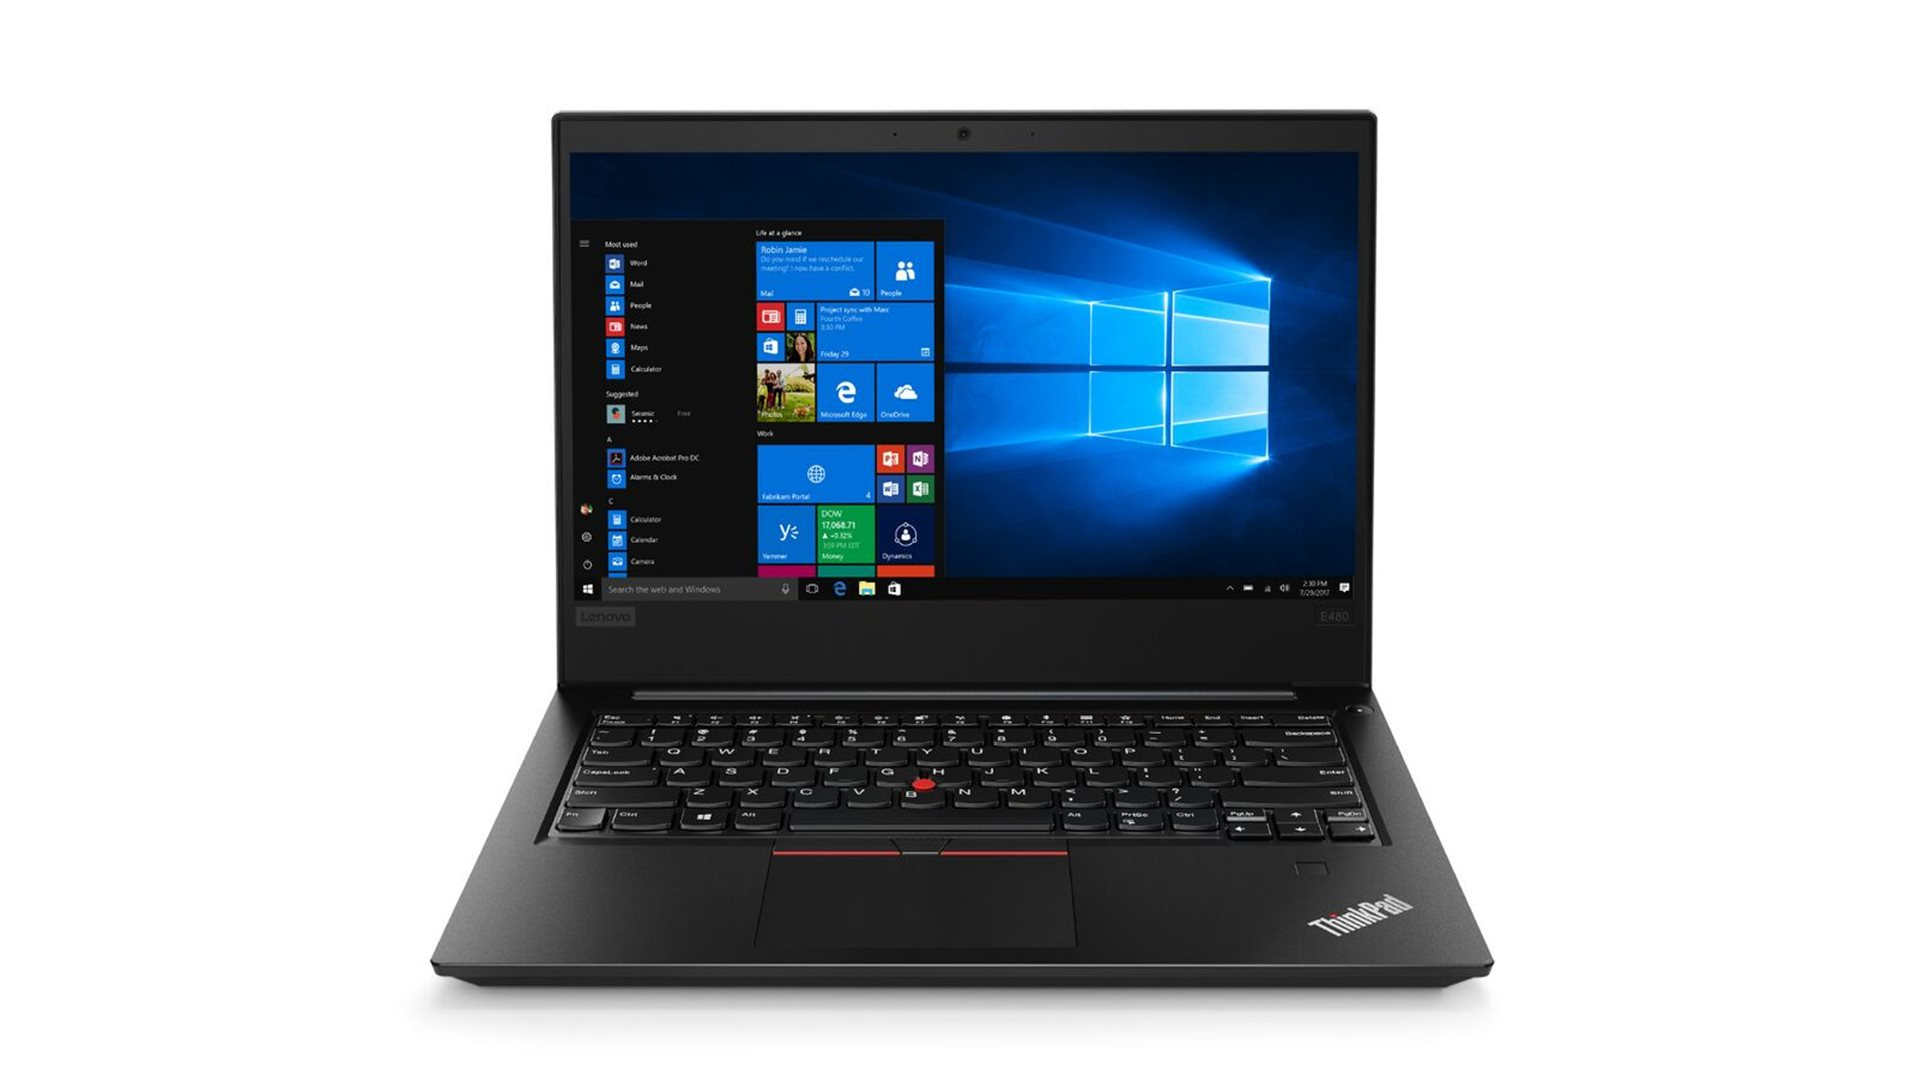 DRIVERS FOR LENOVO THINKPAD EDGE E40 2X2 WLAN